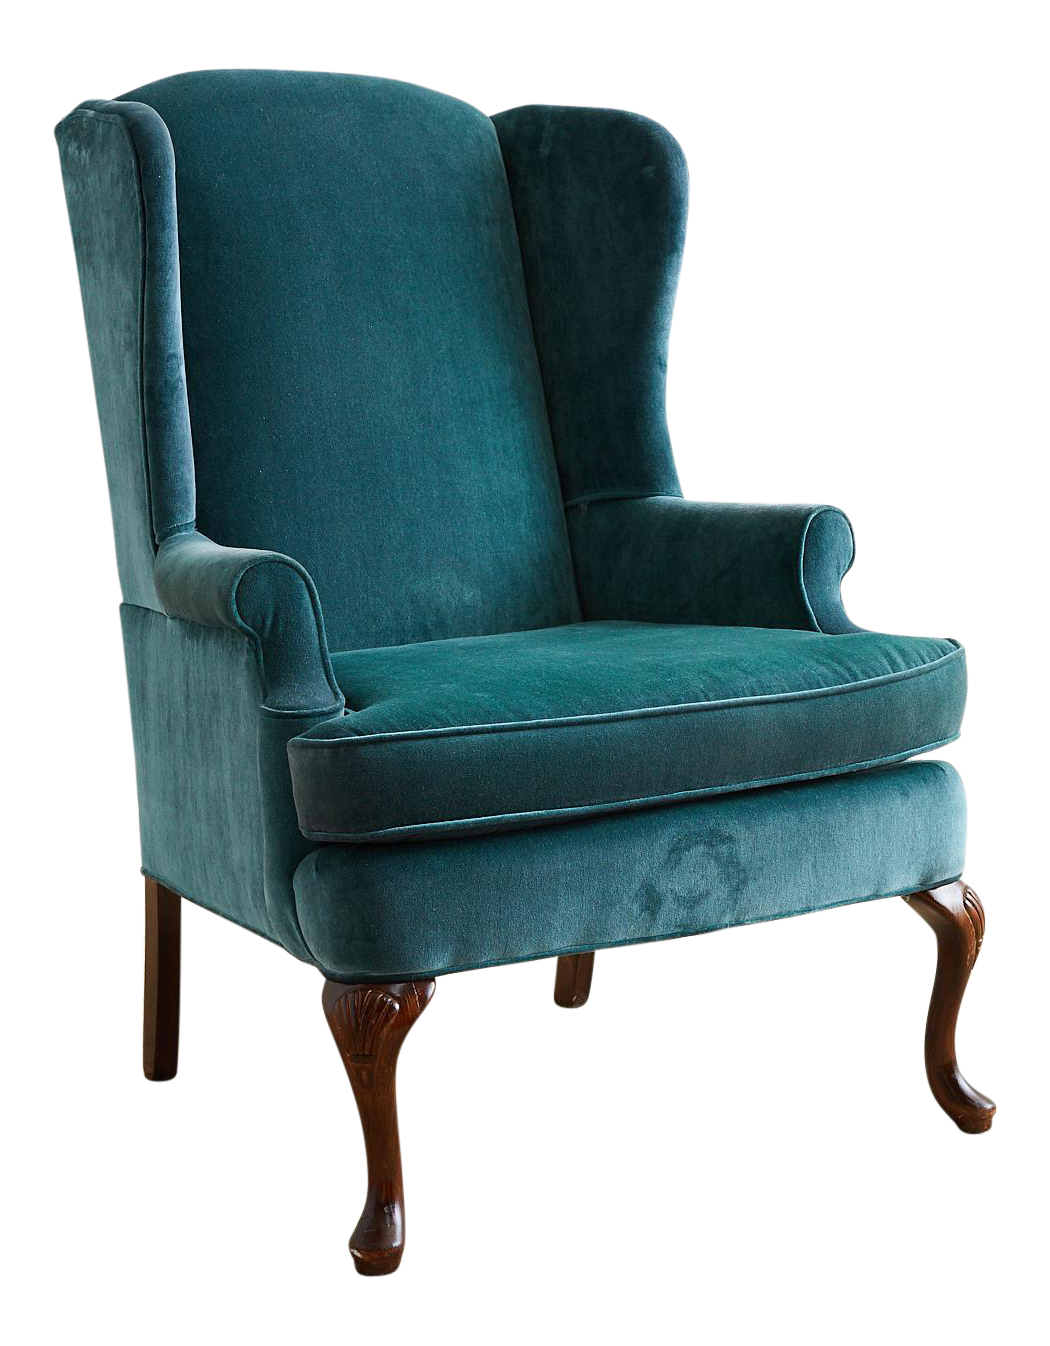 20th Century Queen Anne Teal Velvet Wingback Armchair